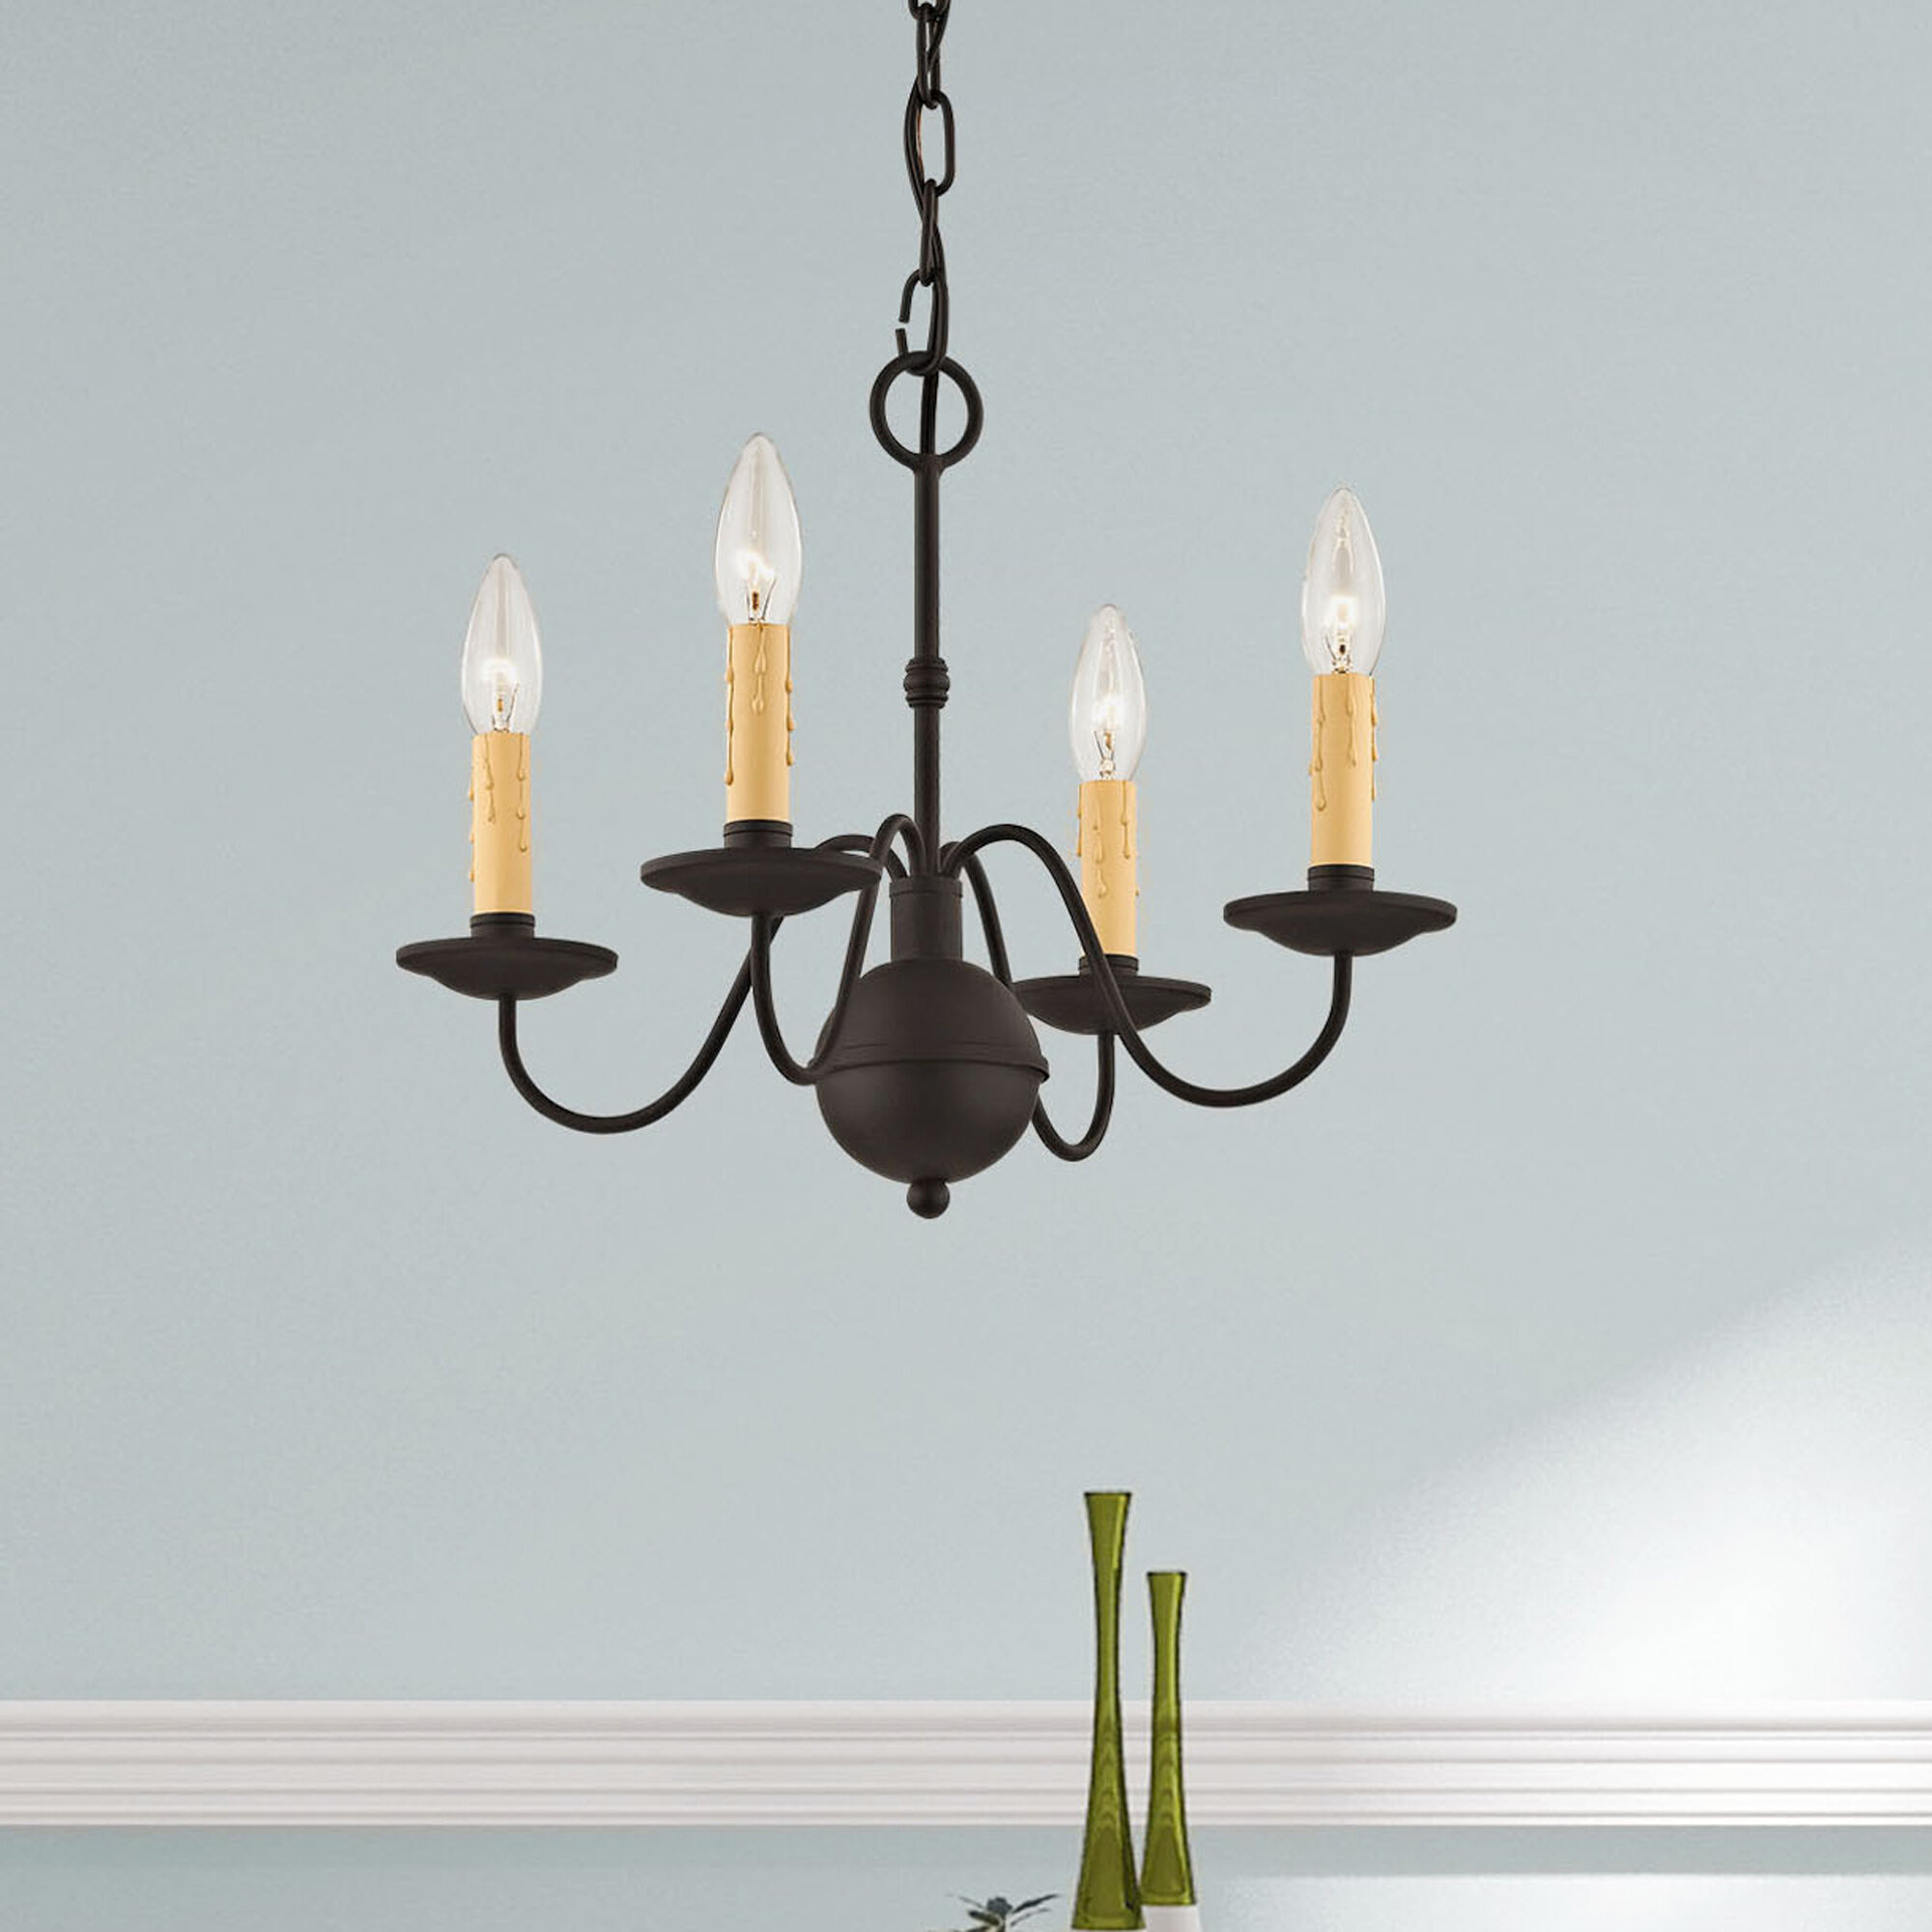 Darby Home Co Eberhart 4 Light Candle Style Traditional Chandelier Reviews Wayfair